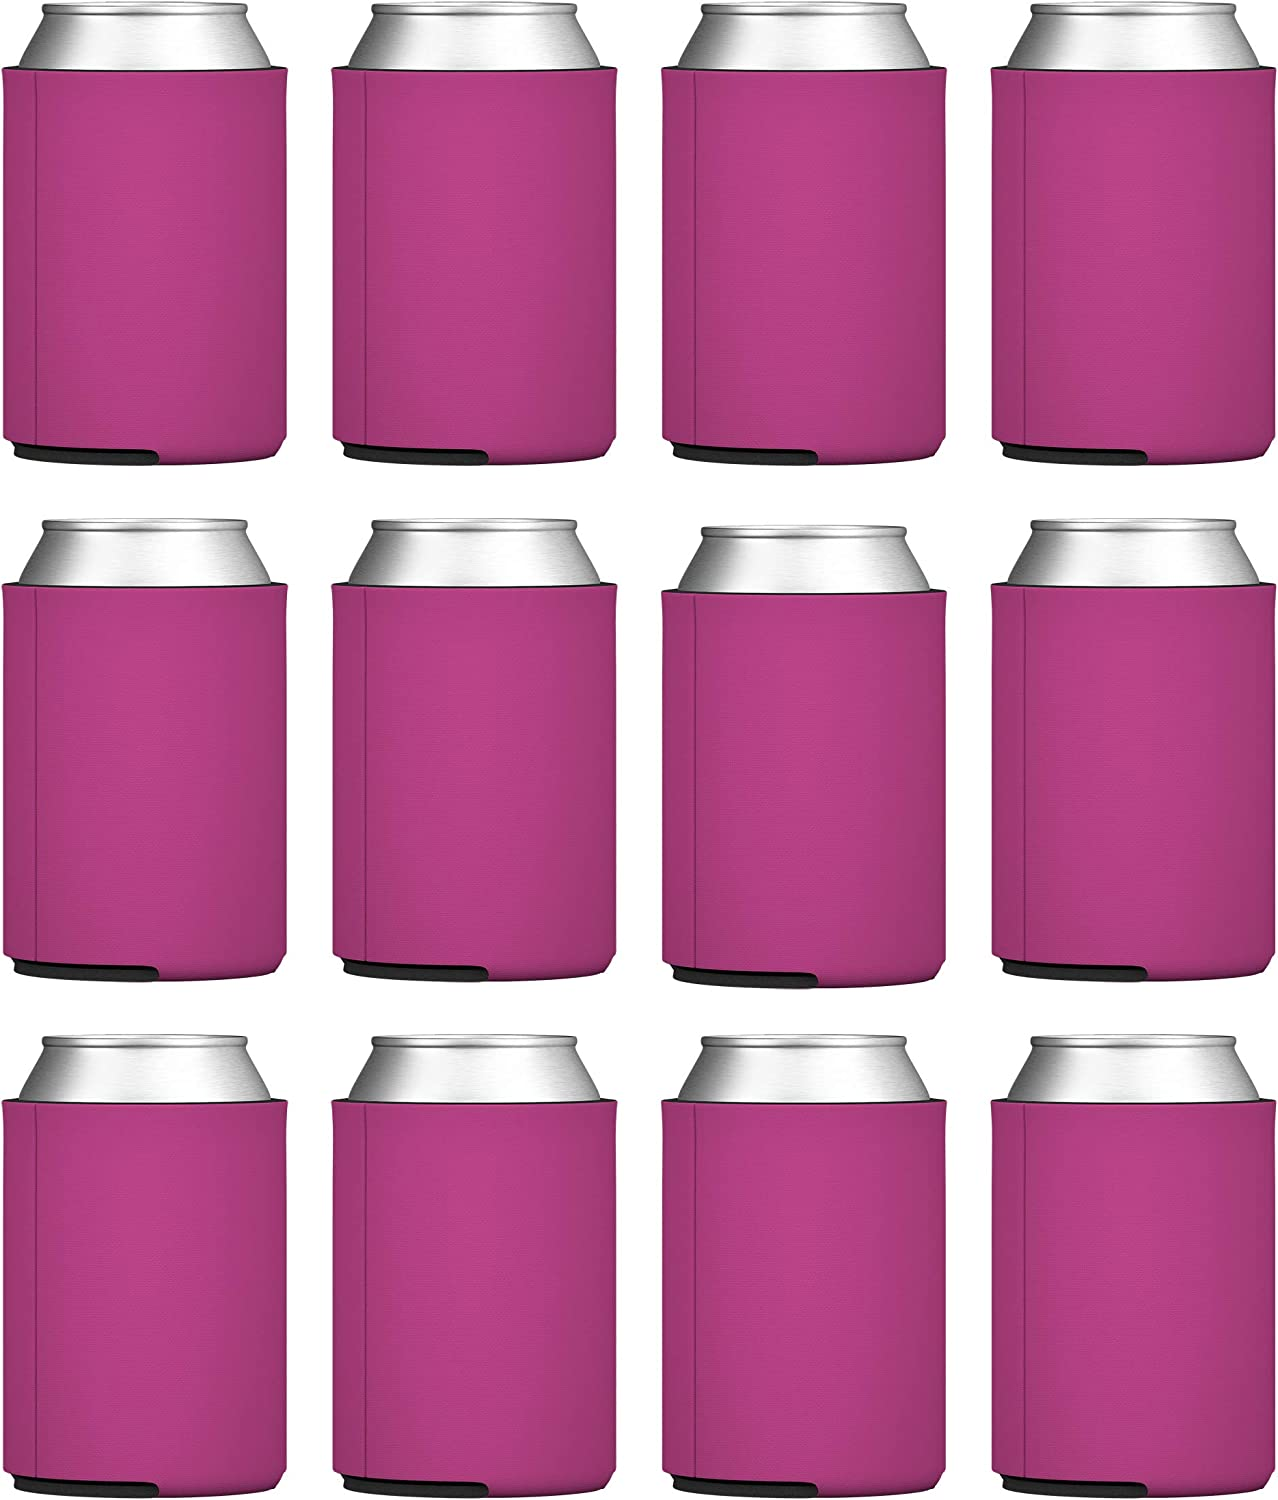 TahoeBay Blank Beer Can Coolers, Plain Bulk Collapsible Foam Soda Cover Coolies, Personalized Sublimation Sleeves for Weddings, Bachelorette Parties, HTV Projects (Fuchsia)